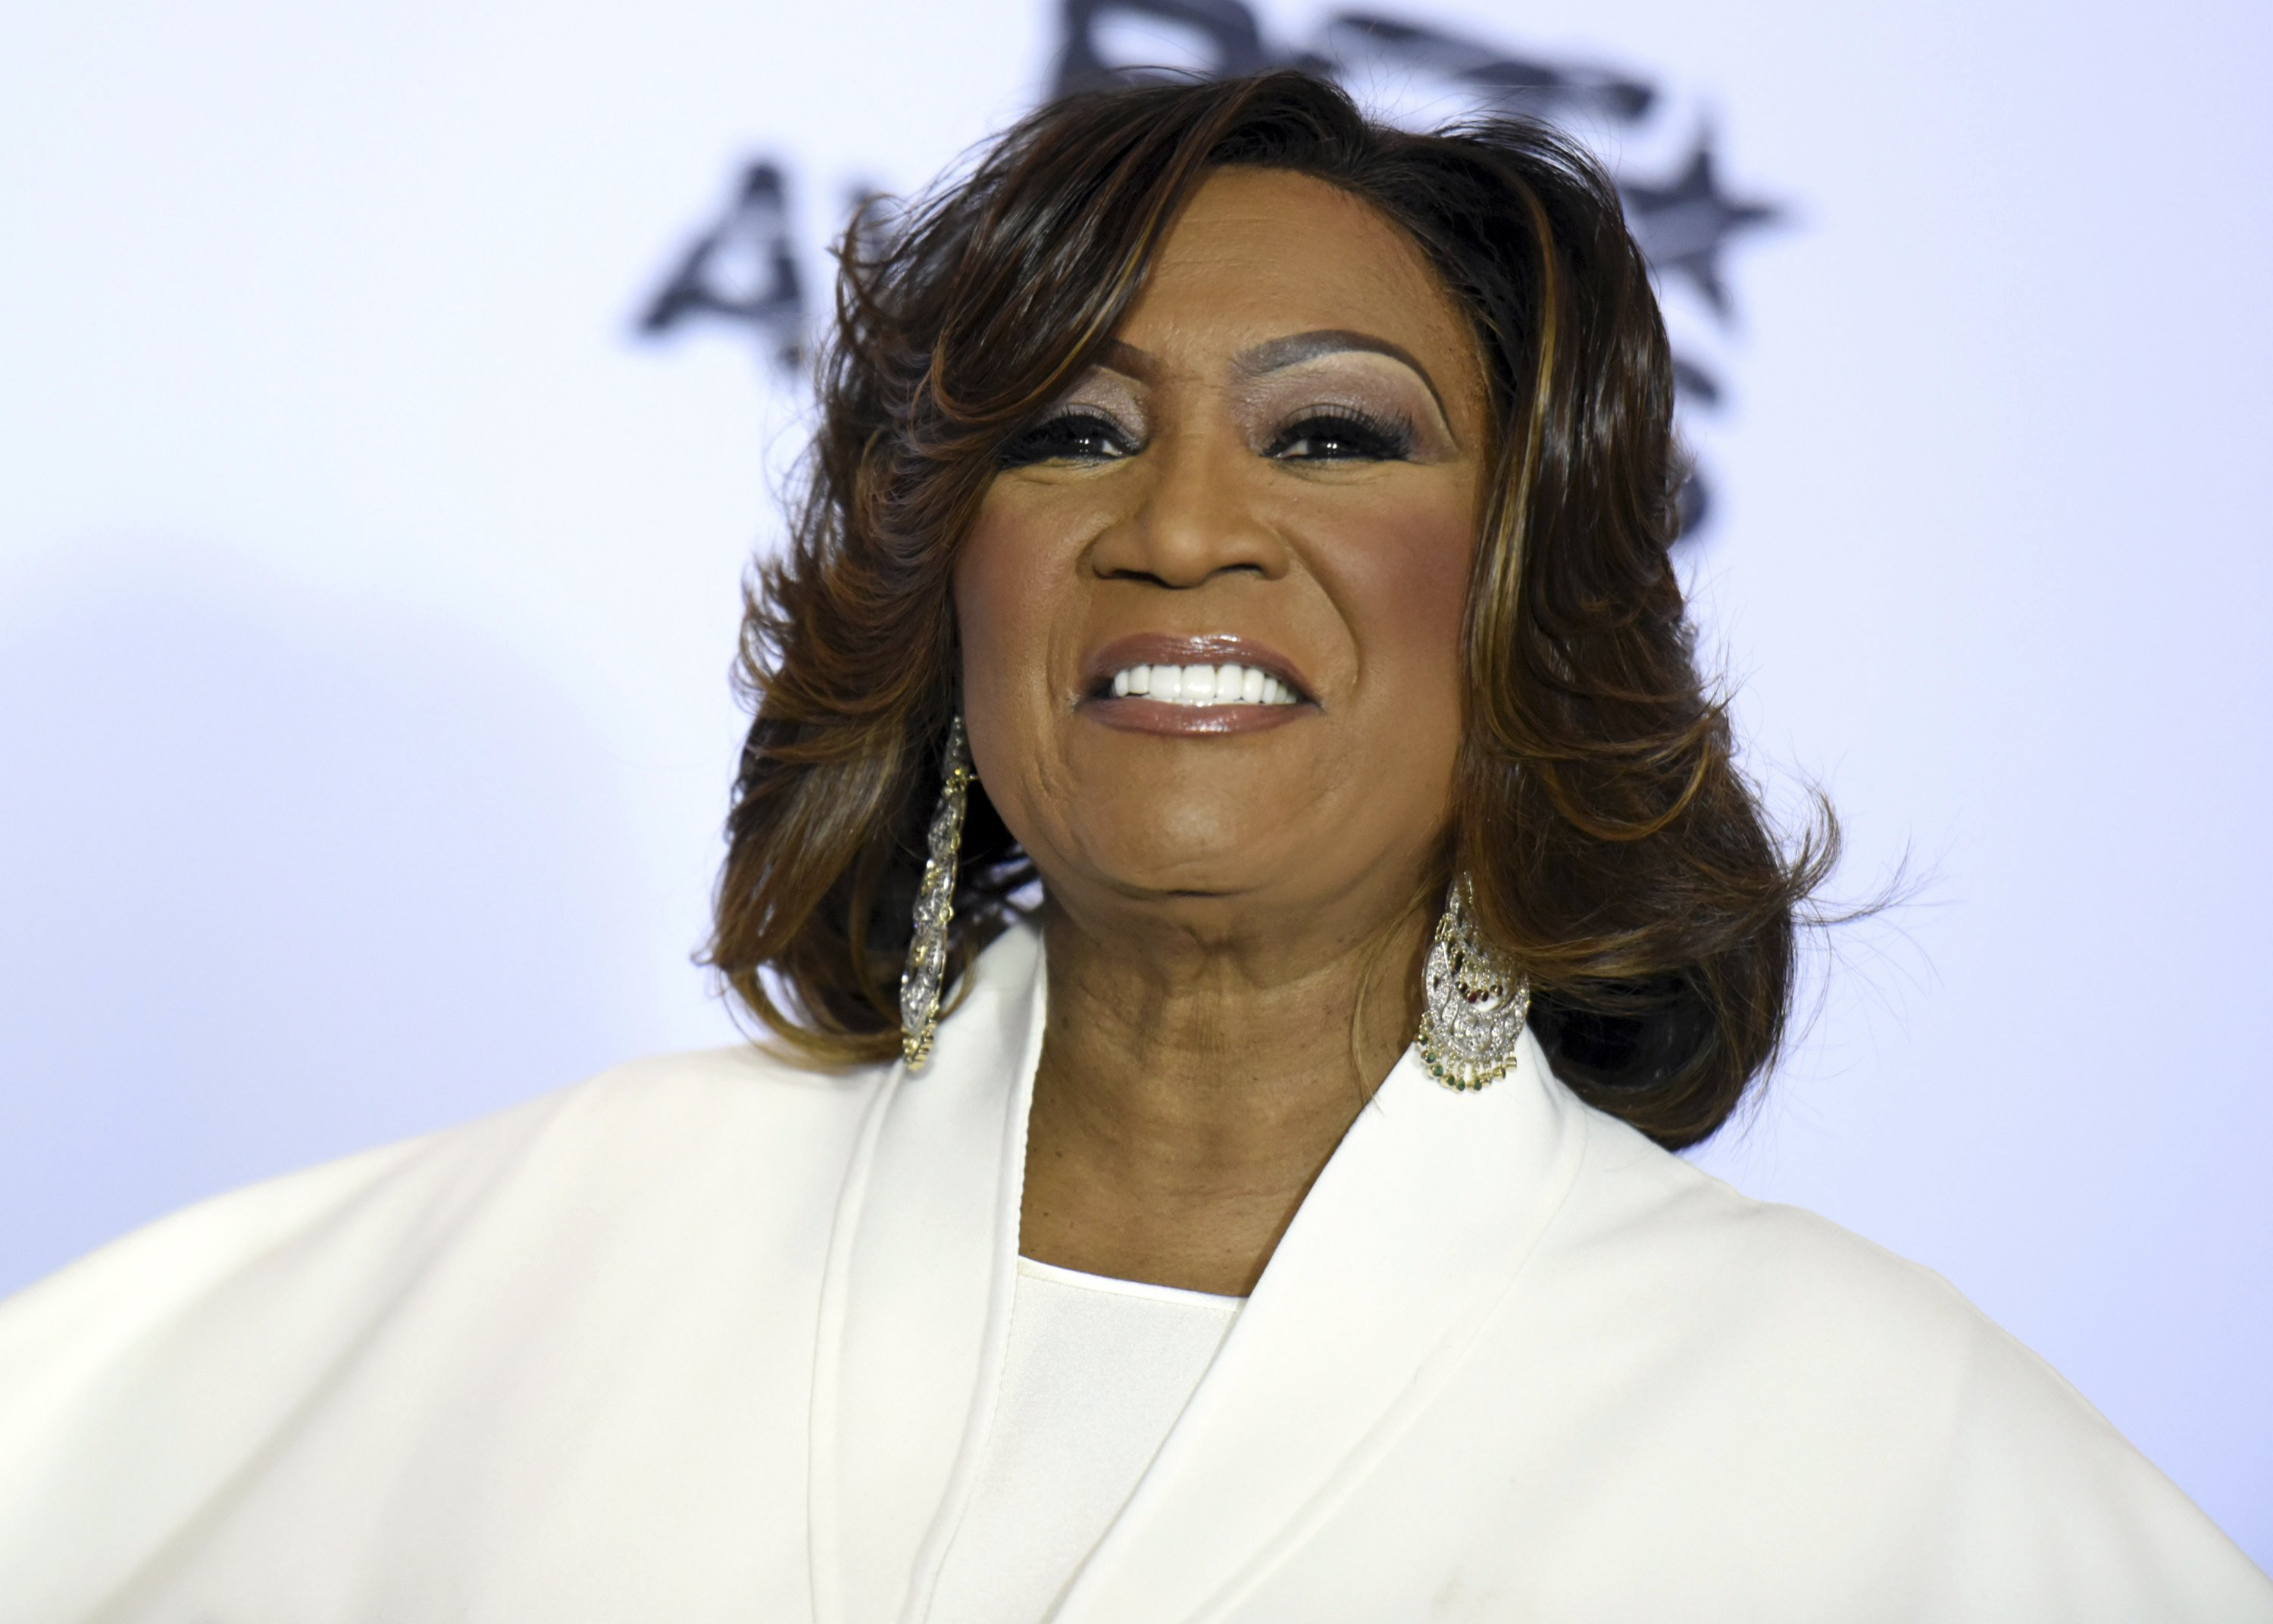 Singer Patti LaBelle to be honored with street naming